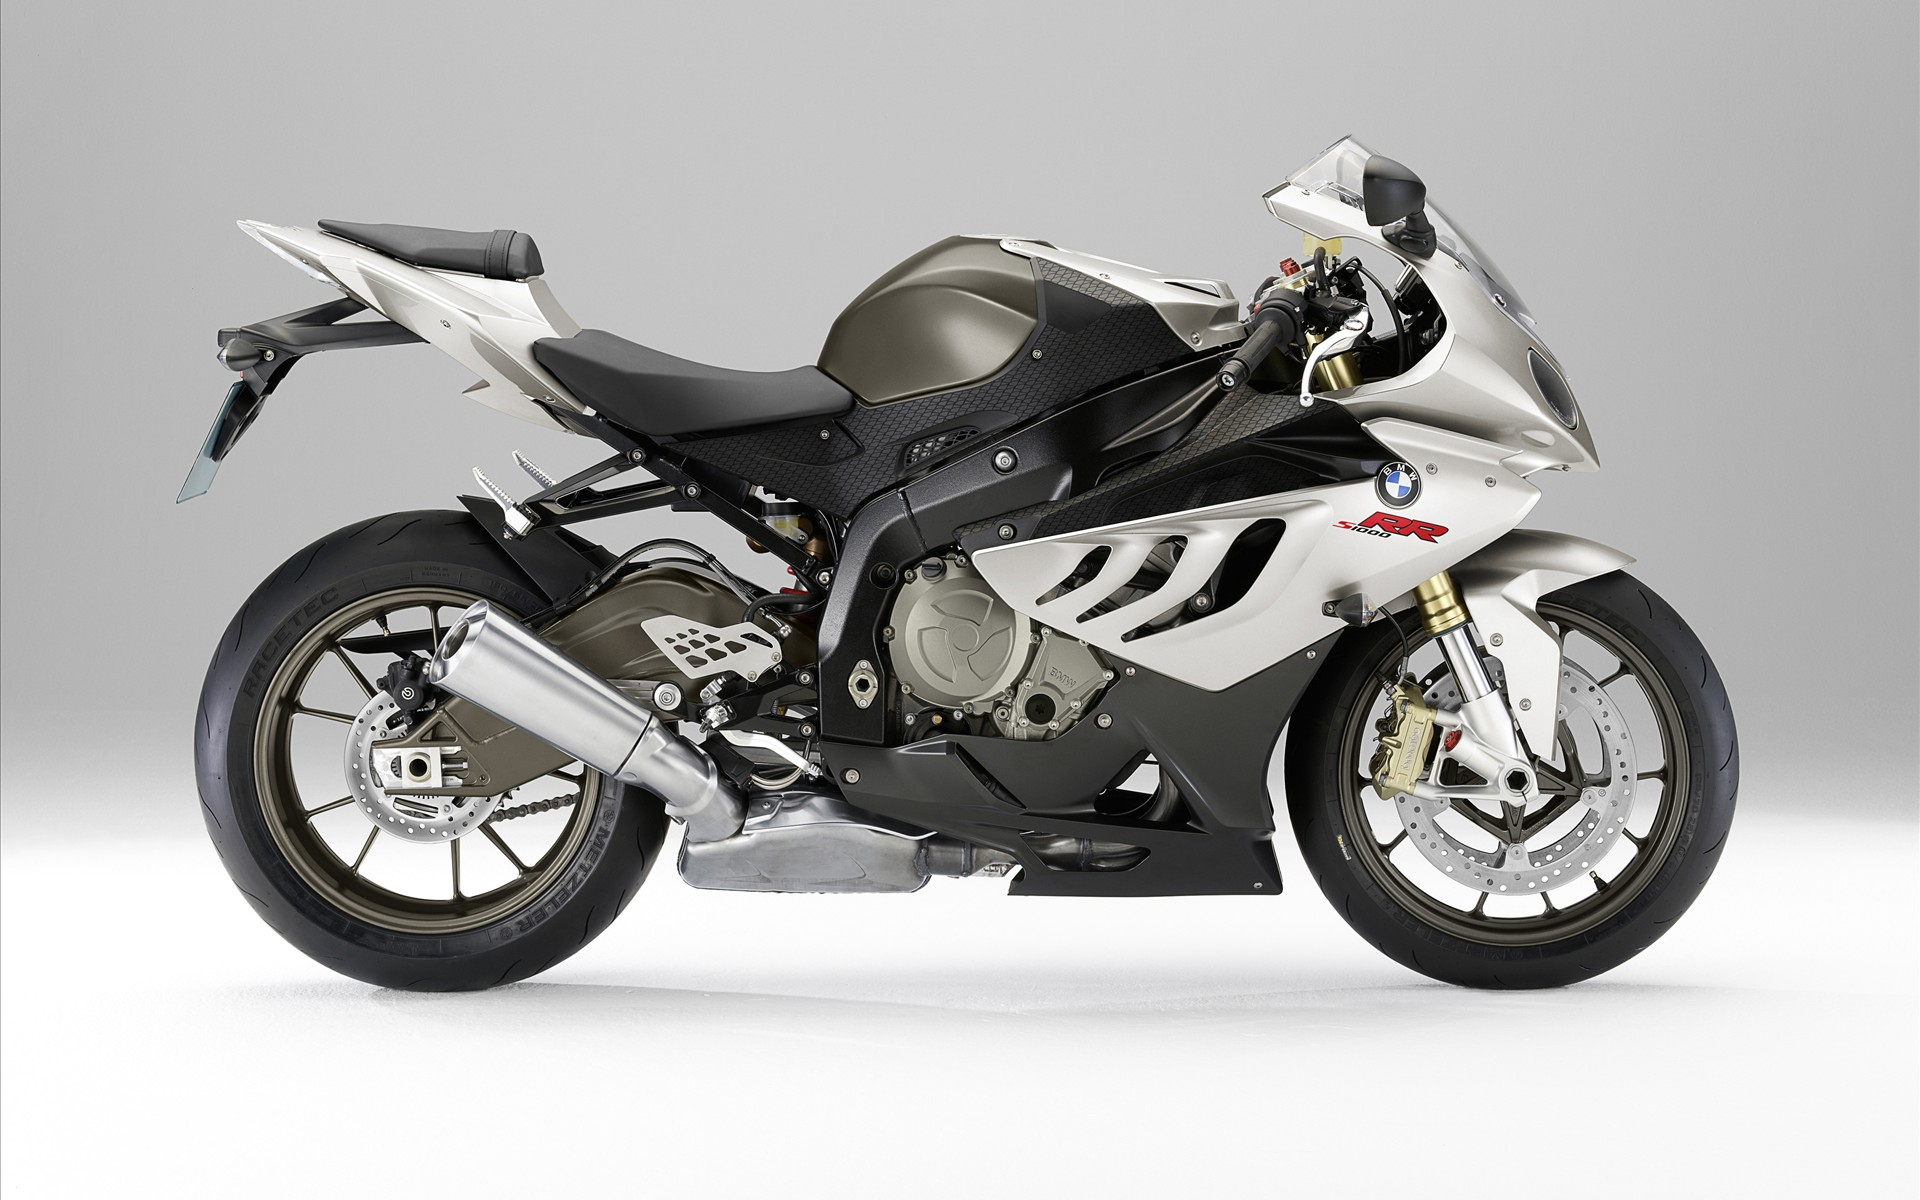 BMW S 1000 RR Bike 360.11 Kb